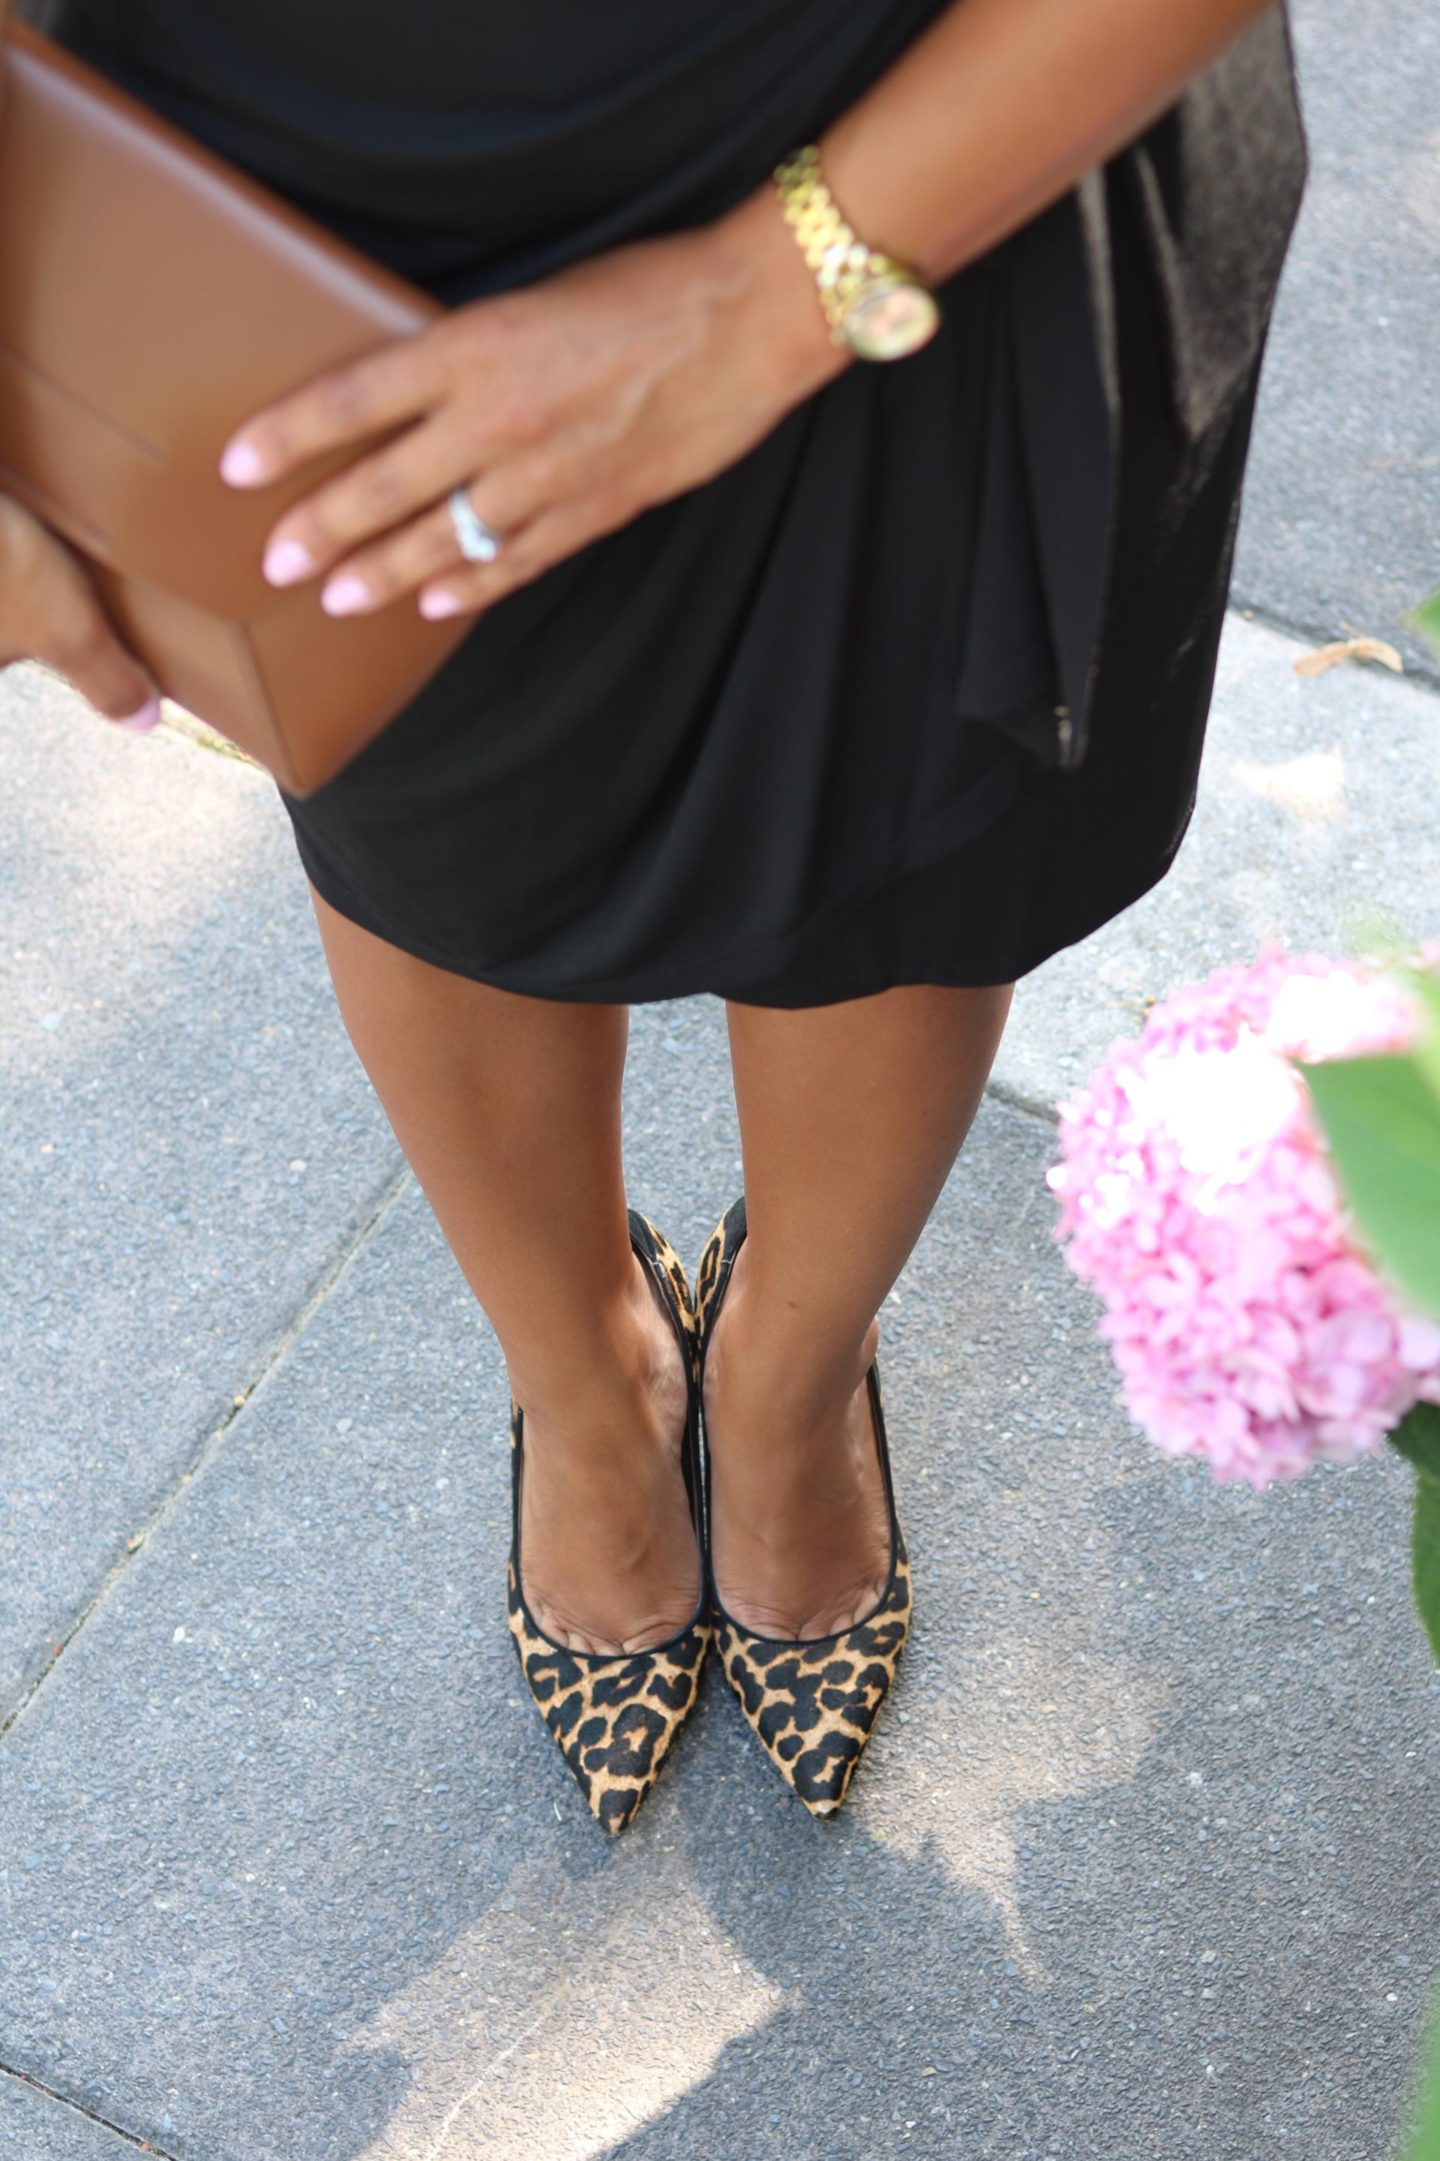 This Season's Gold // Changing Season - Wrap Dress and Leopard Pumps